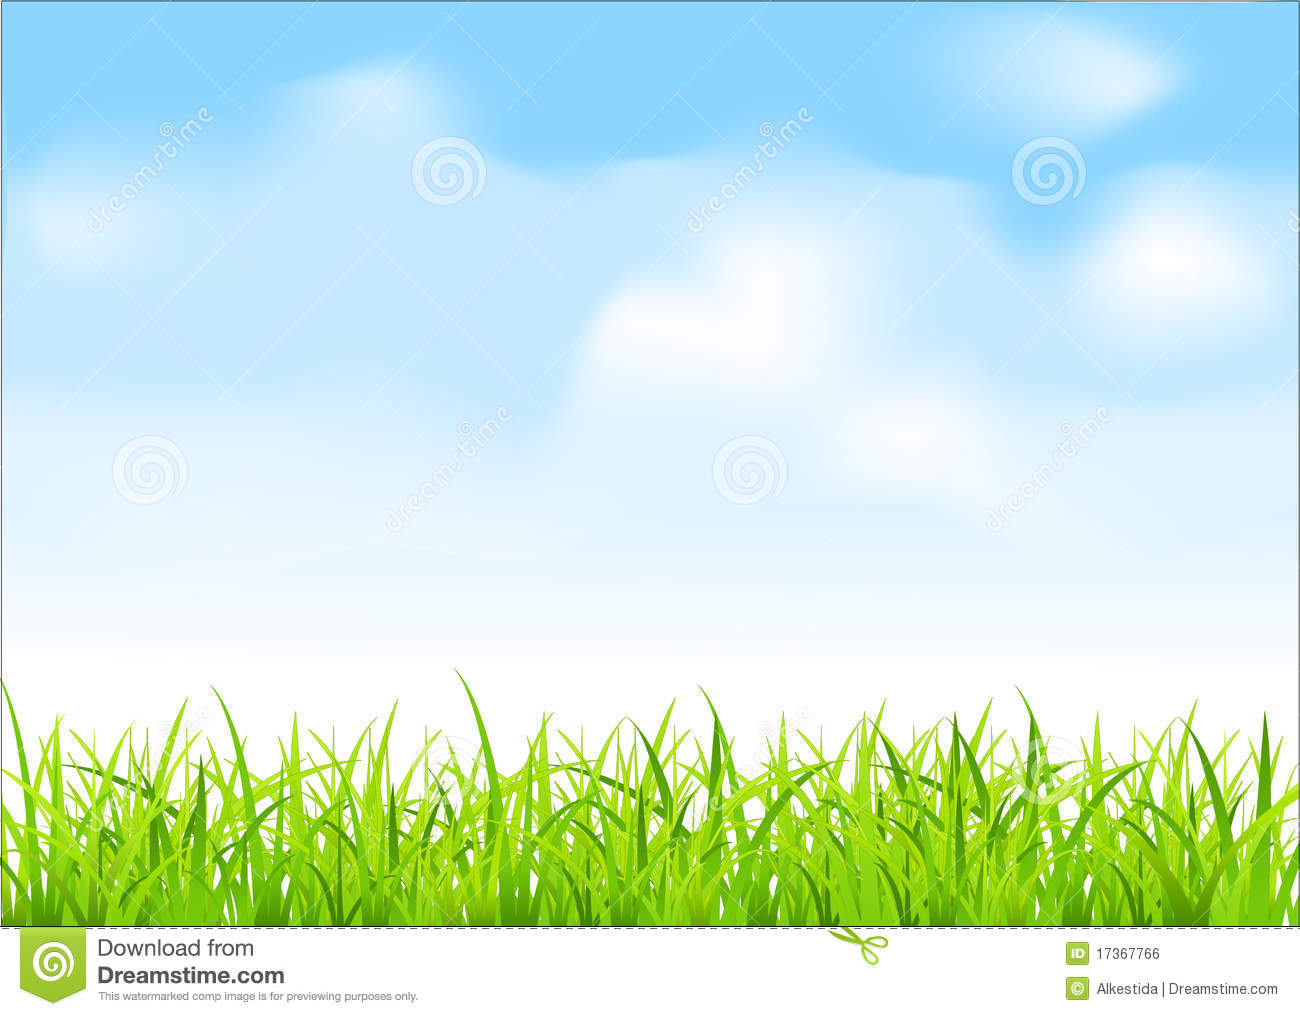 Free Vector Cute Cartoon Landscape Vector moreover Royalty Free Stock Image Vector Green Grass Blue Sky Image17367766 as well Grass Leaves Silhouette 718279 also Diploma Icon 10241 in addition Details. on free tree house design